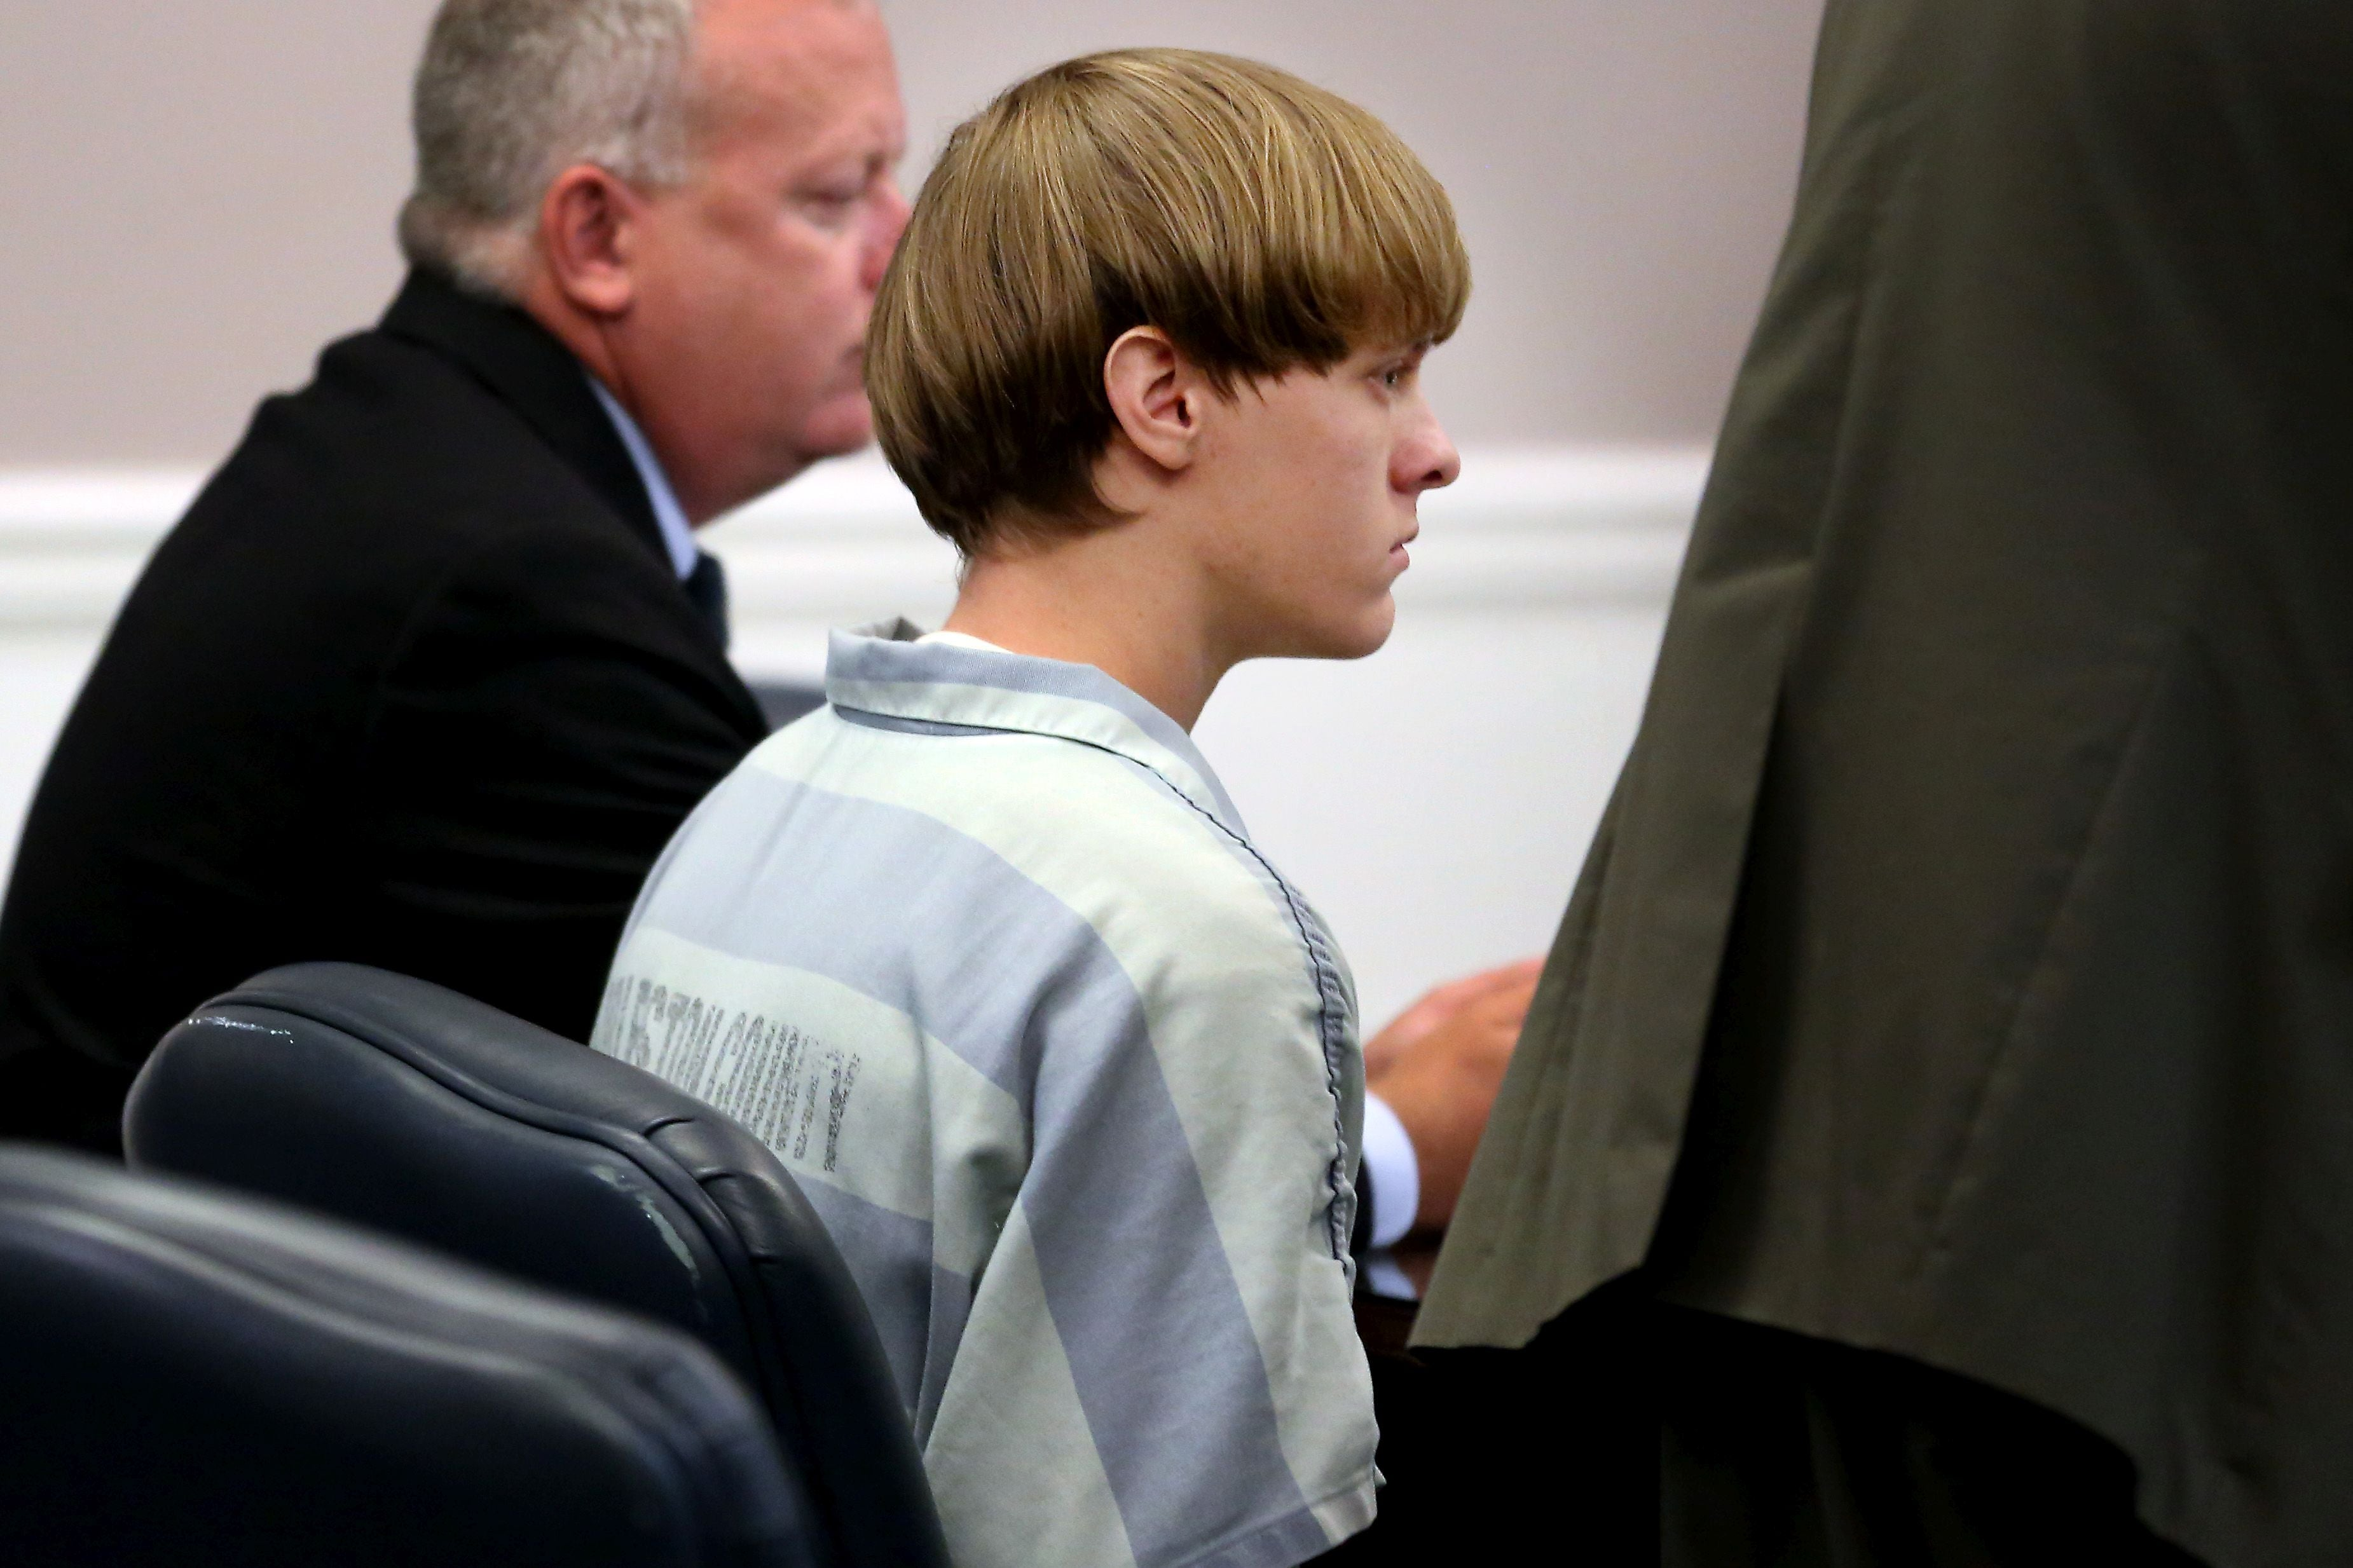 Charleston Church Shooter Dylann Roof Not Interested In Convincing Judge To Spare Him The Death Penalty